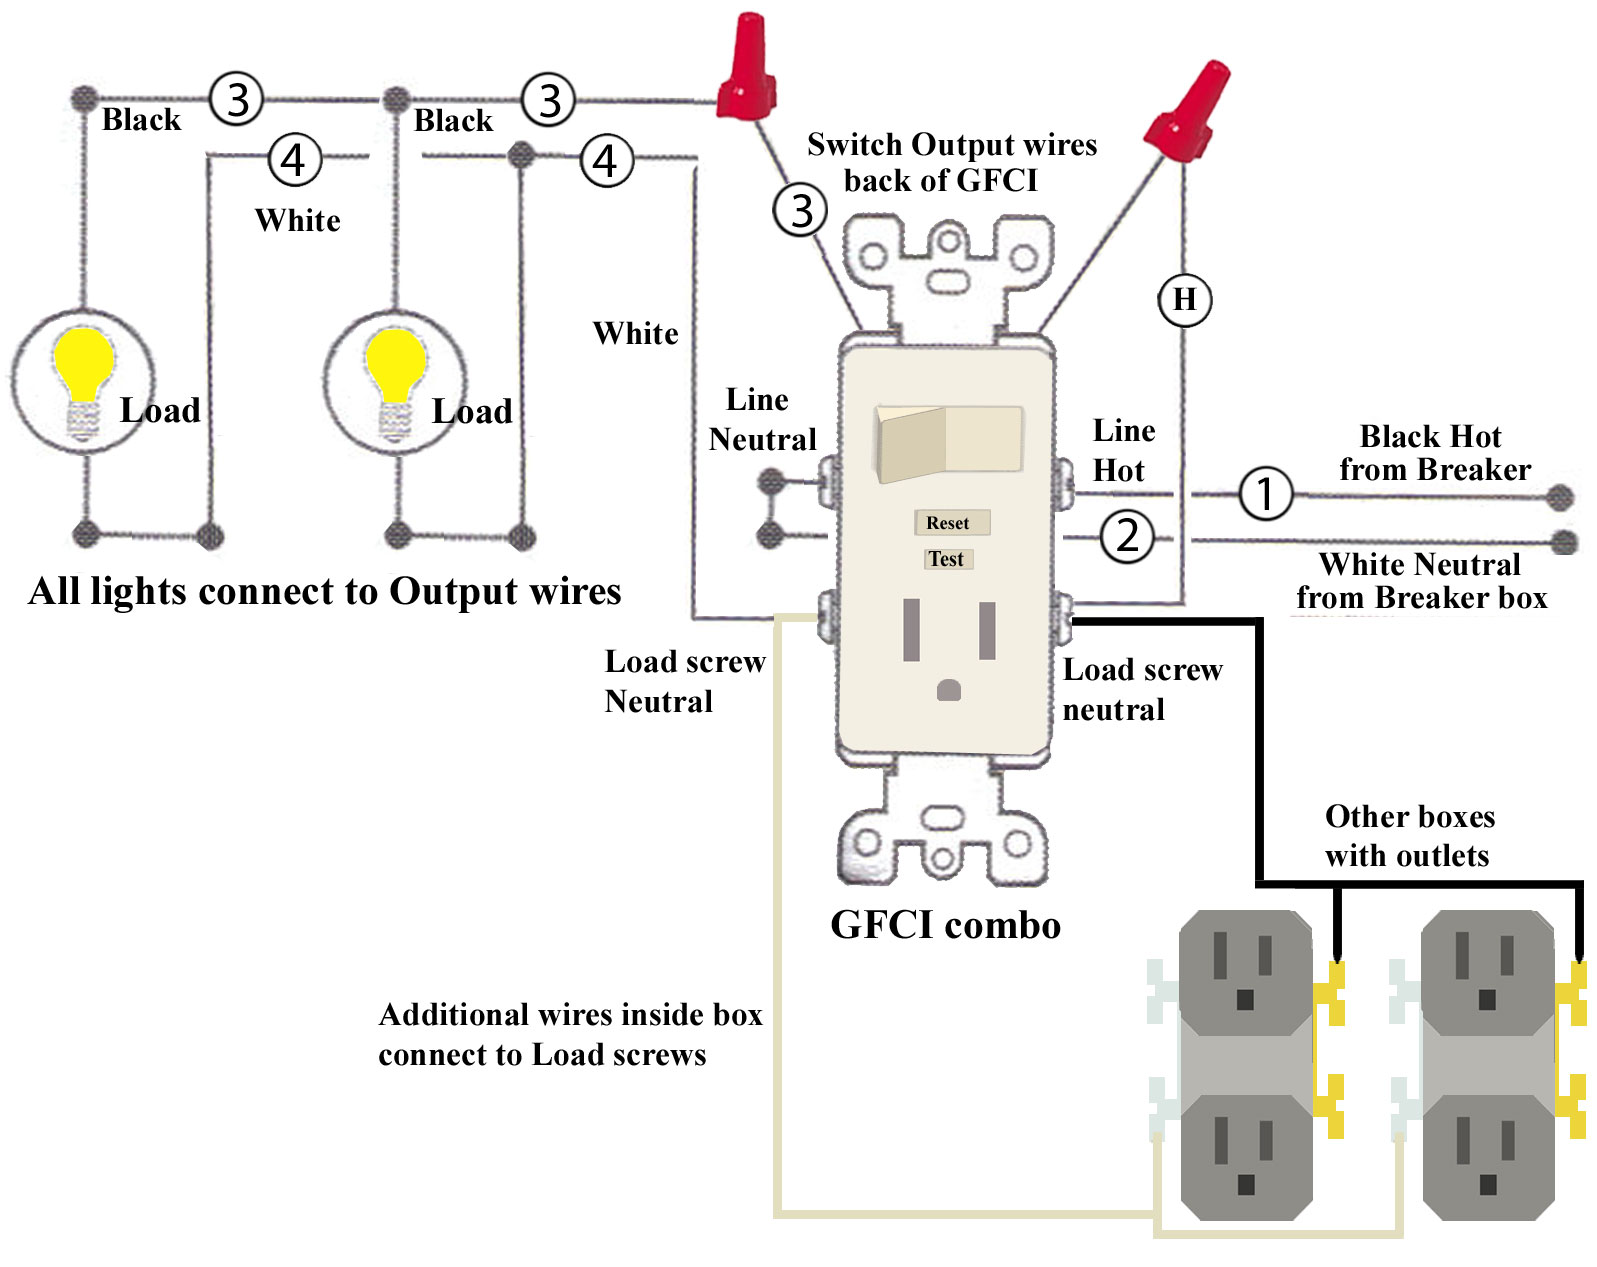 GFCI combo wiring3 update how to install and troubleshoot gfci leviton gfci wiring diagram at reclaimingppi.co